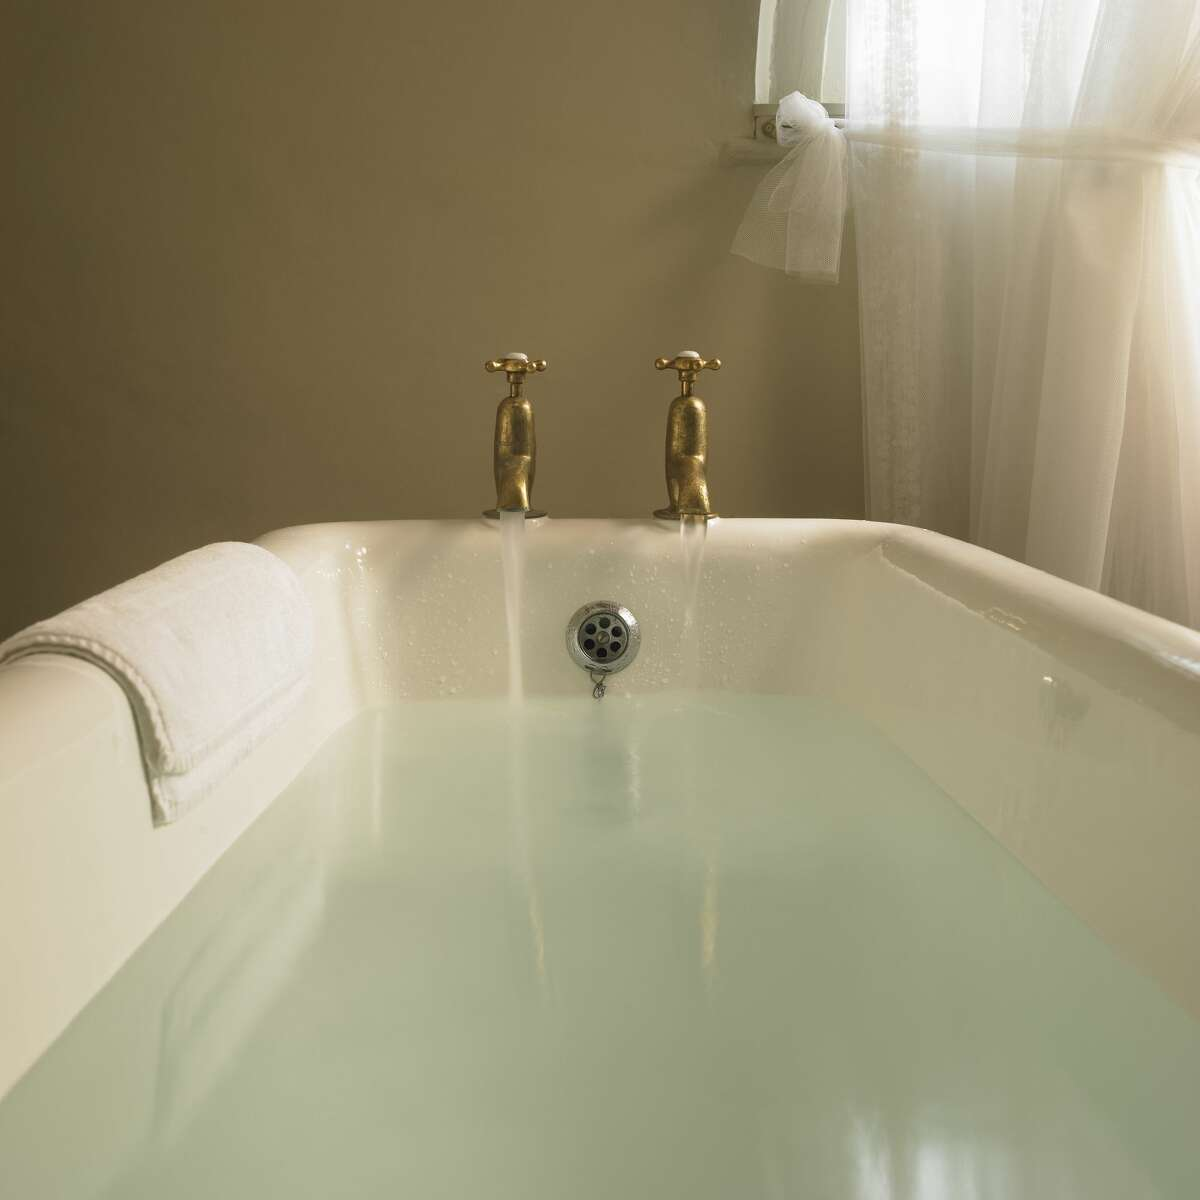 Almost daily an American nearly drowns in a bathtub, hot tub or spa.